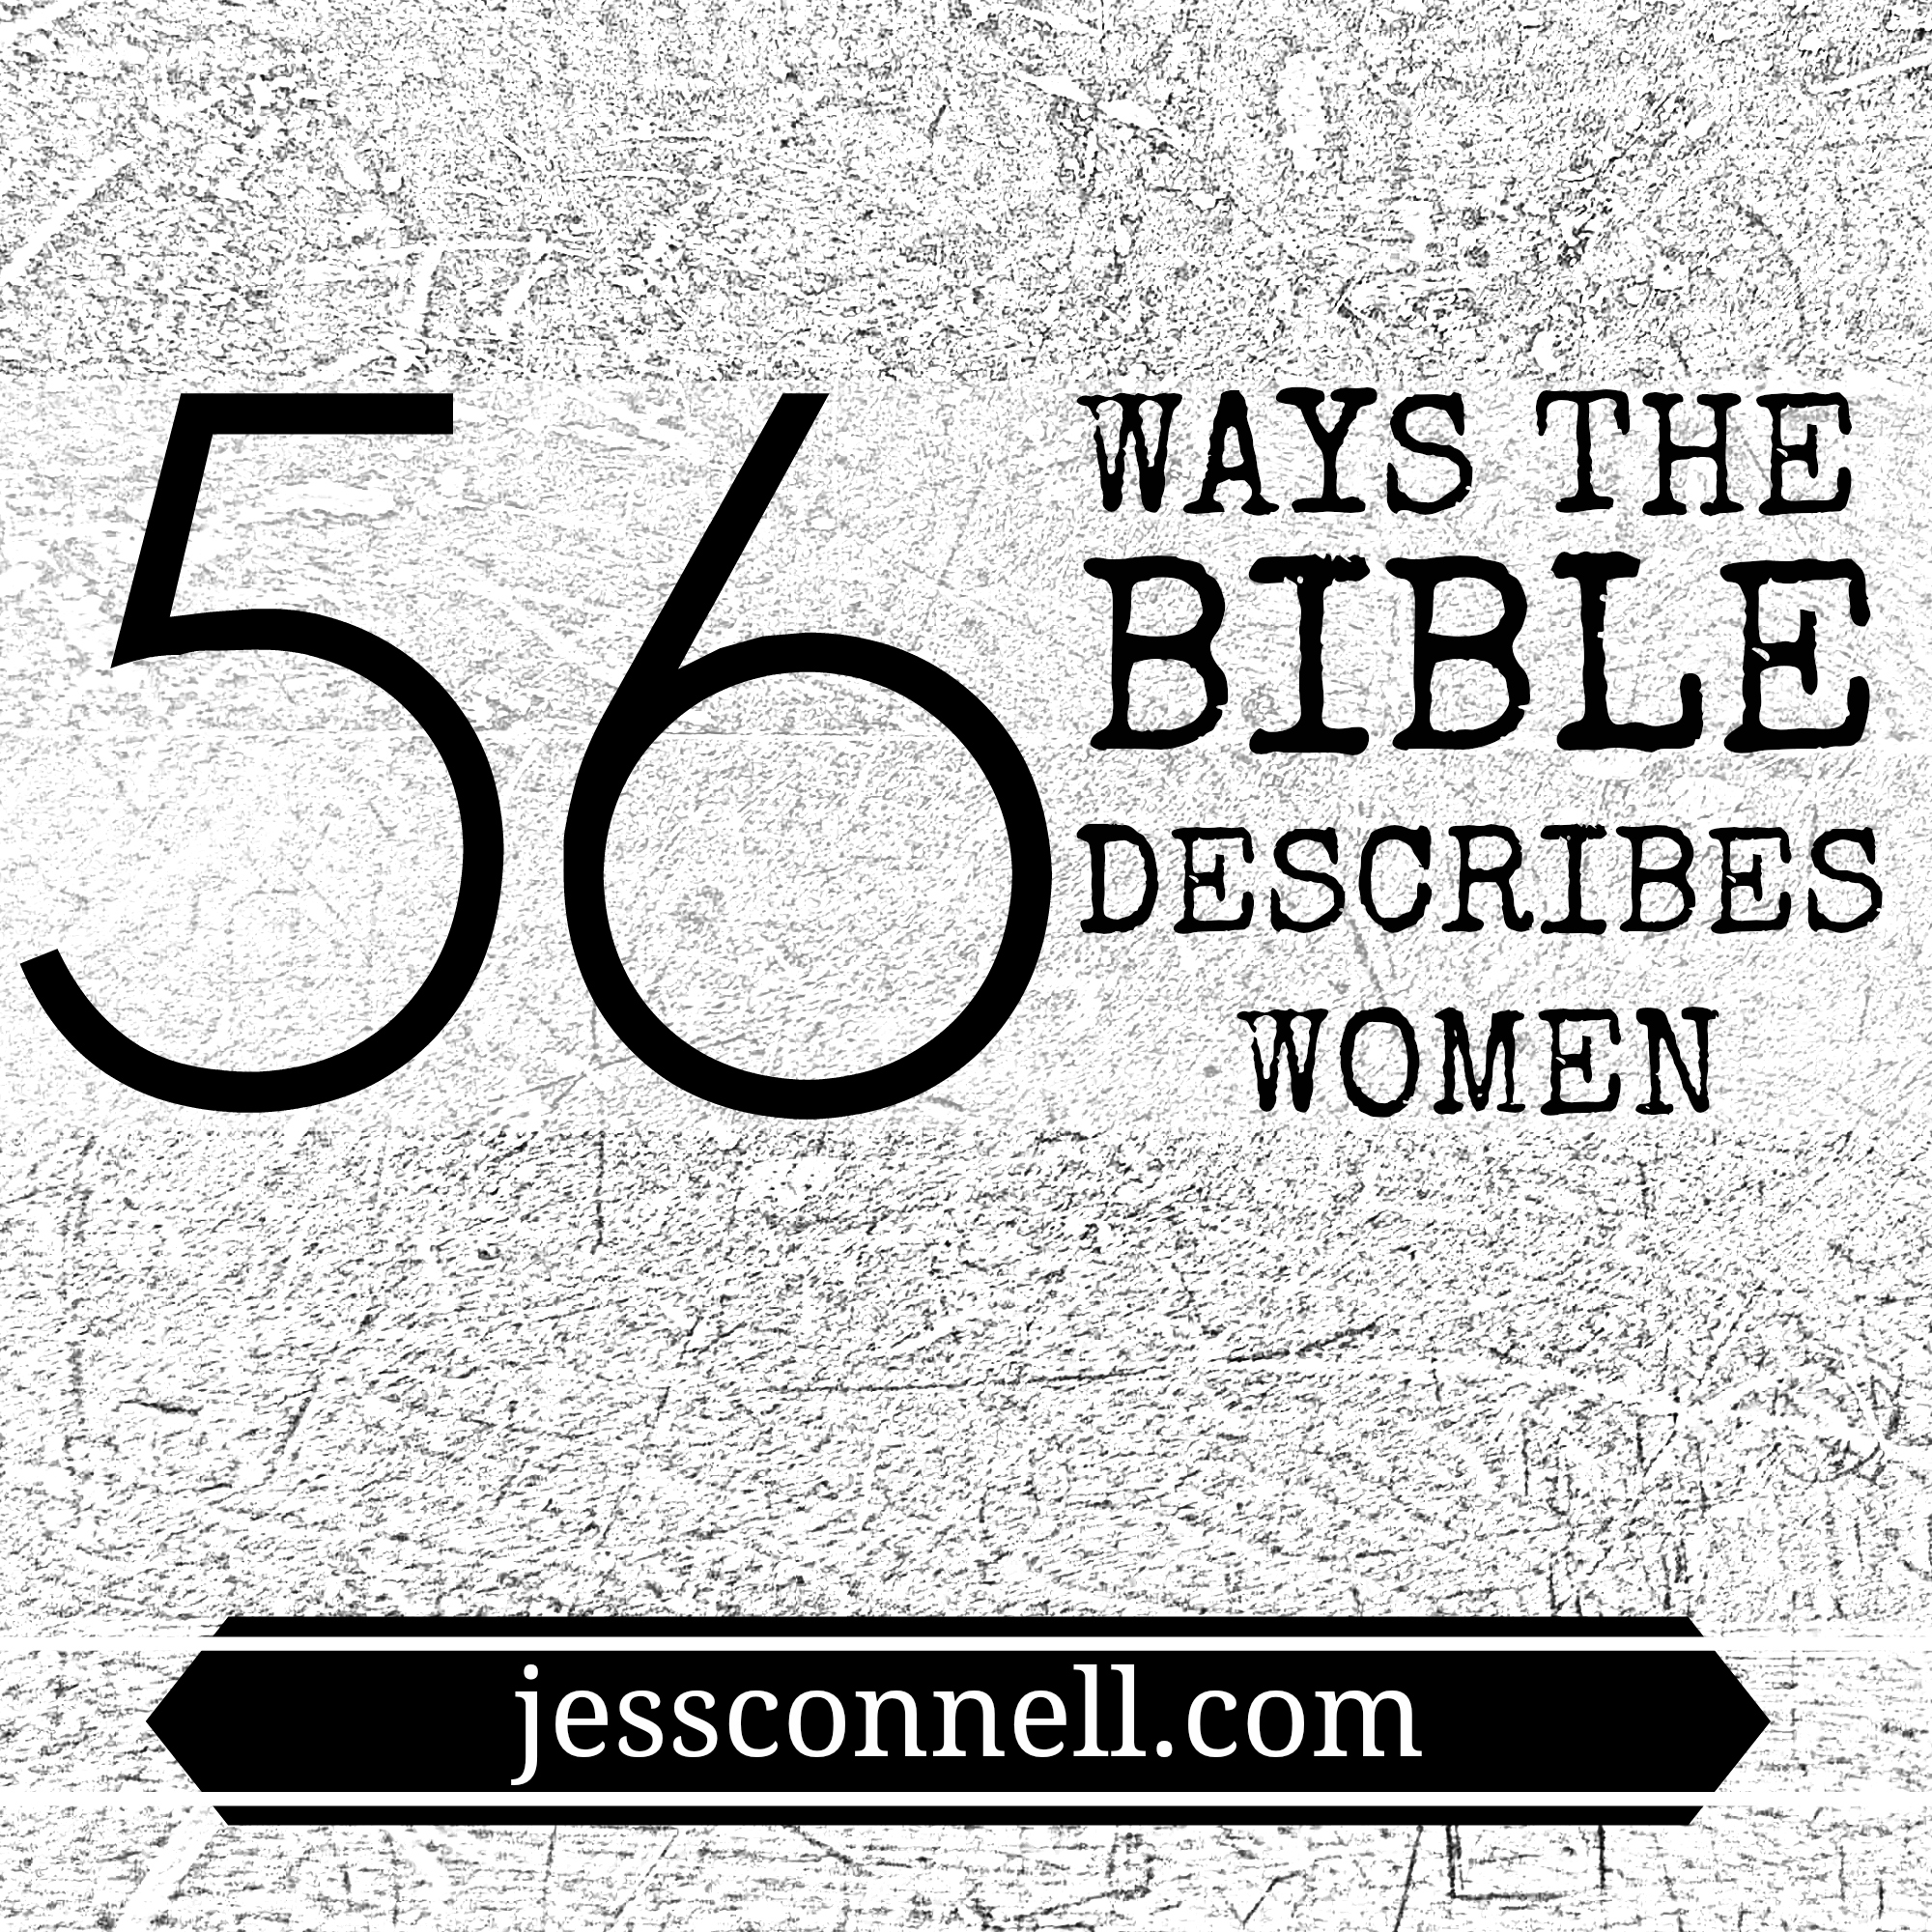 biblical descriptions of women, biblical womanhood, Bible women,